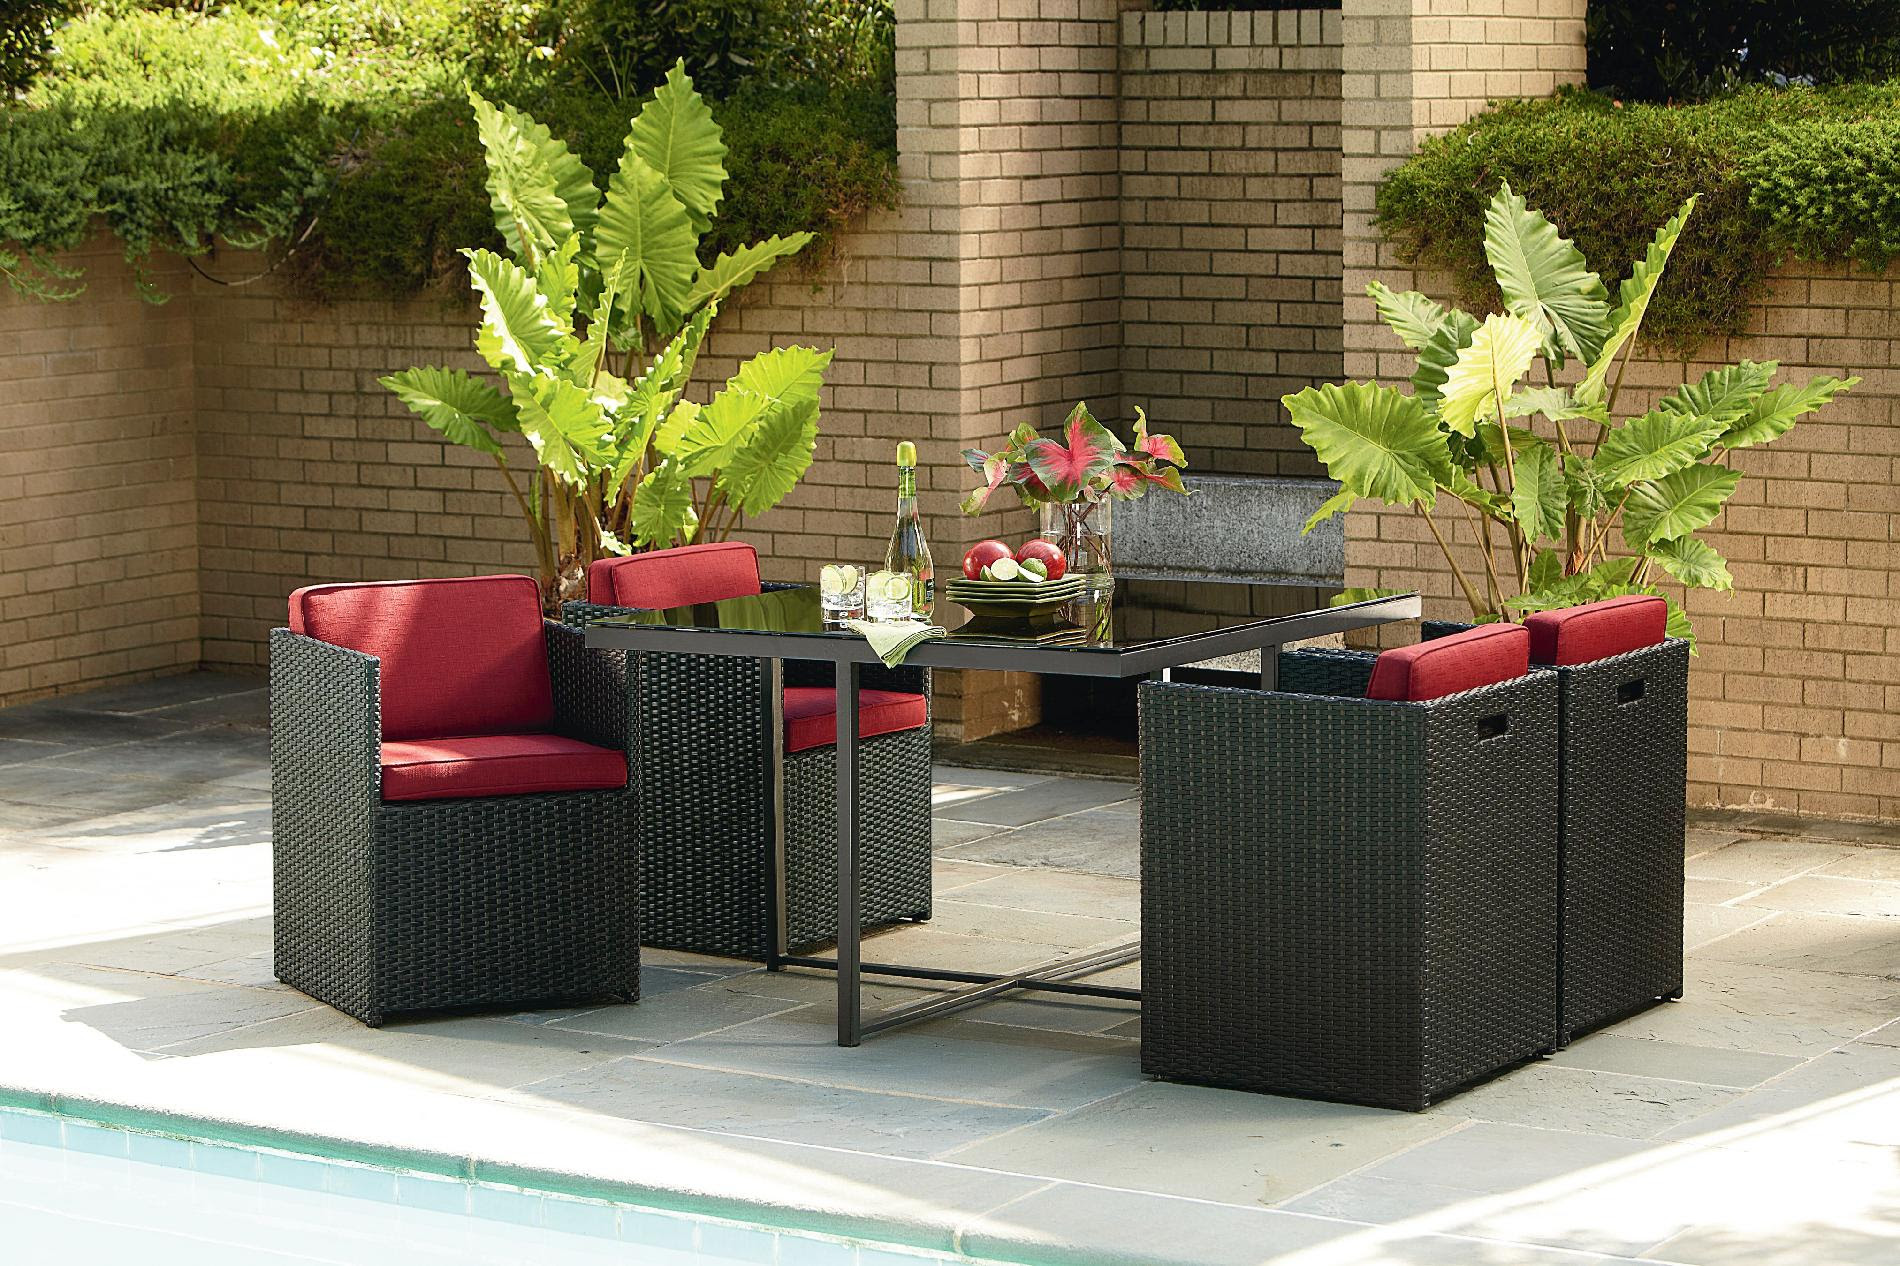 Dining Sets: Get the Best Outdoor Dining Sets at Kmart